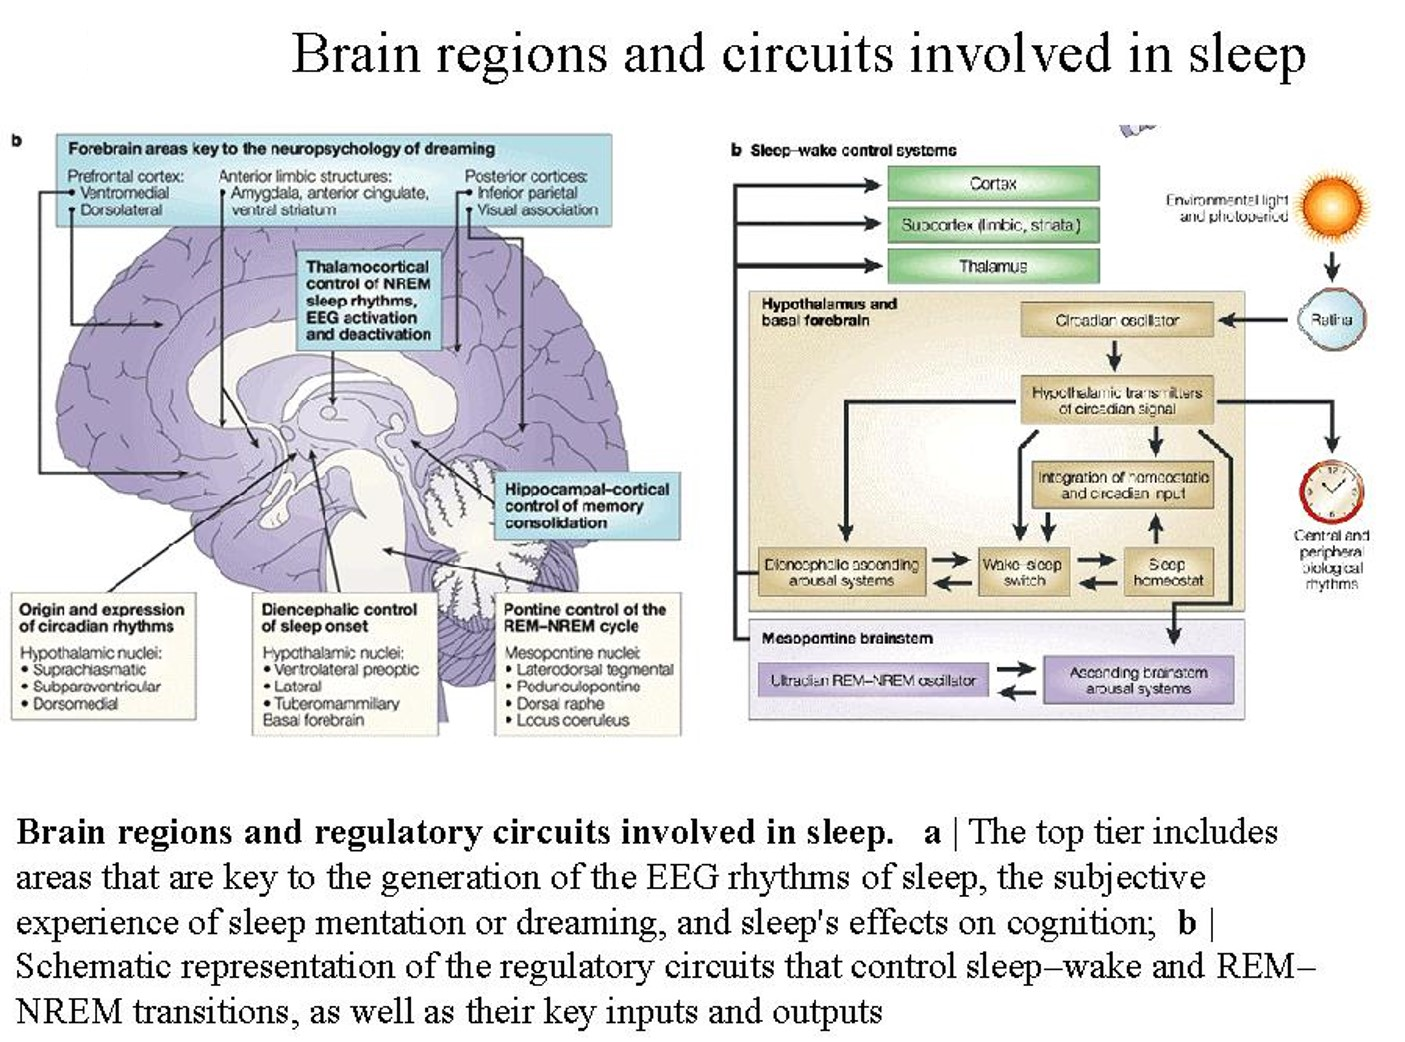 Brain circuit that drives sleep-wake states, sleep-preparation behavior is identified